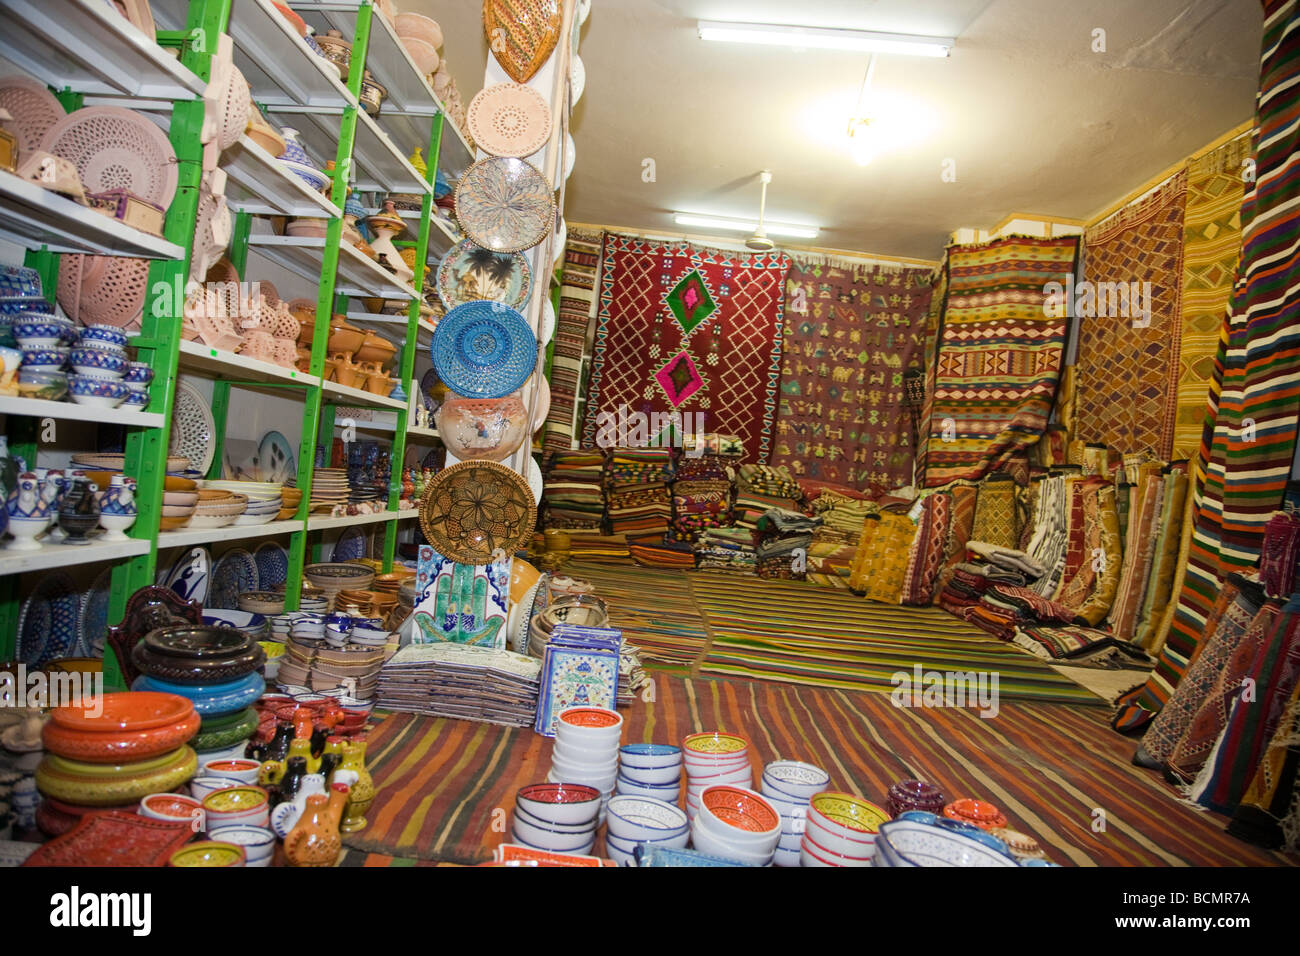 A shop in Tozeur, Tunisia sells rugs, clothing, and other traditional handicrafts to tourists. - Stock Image